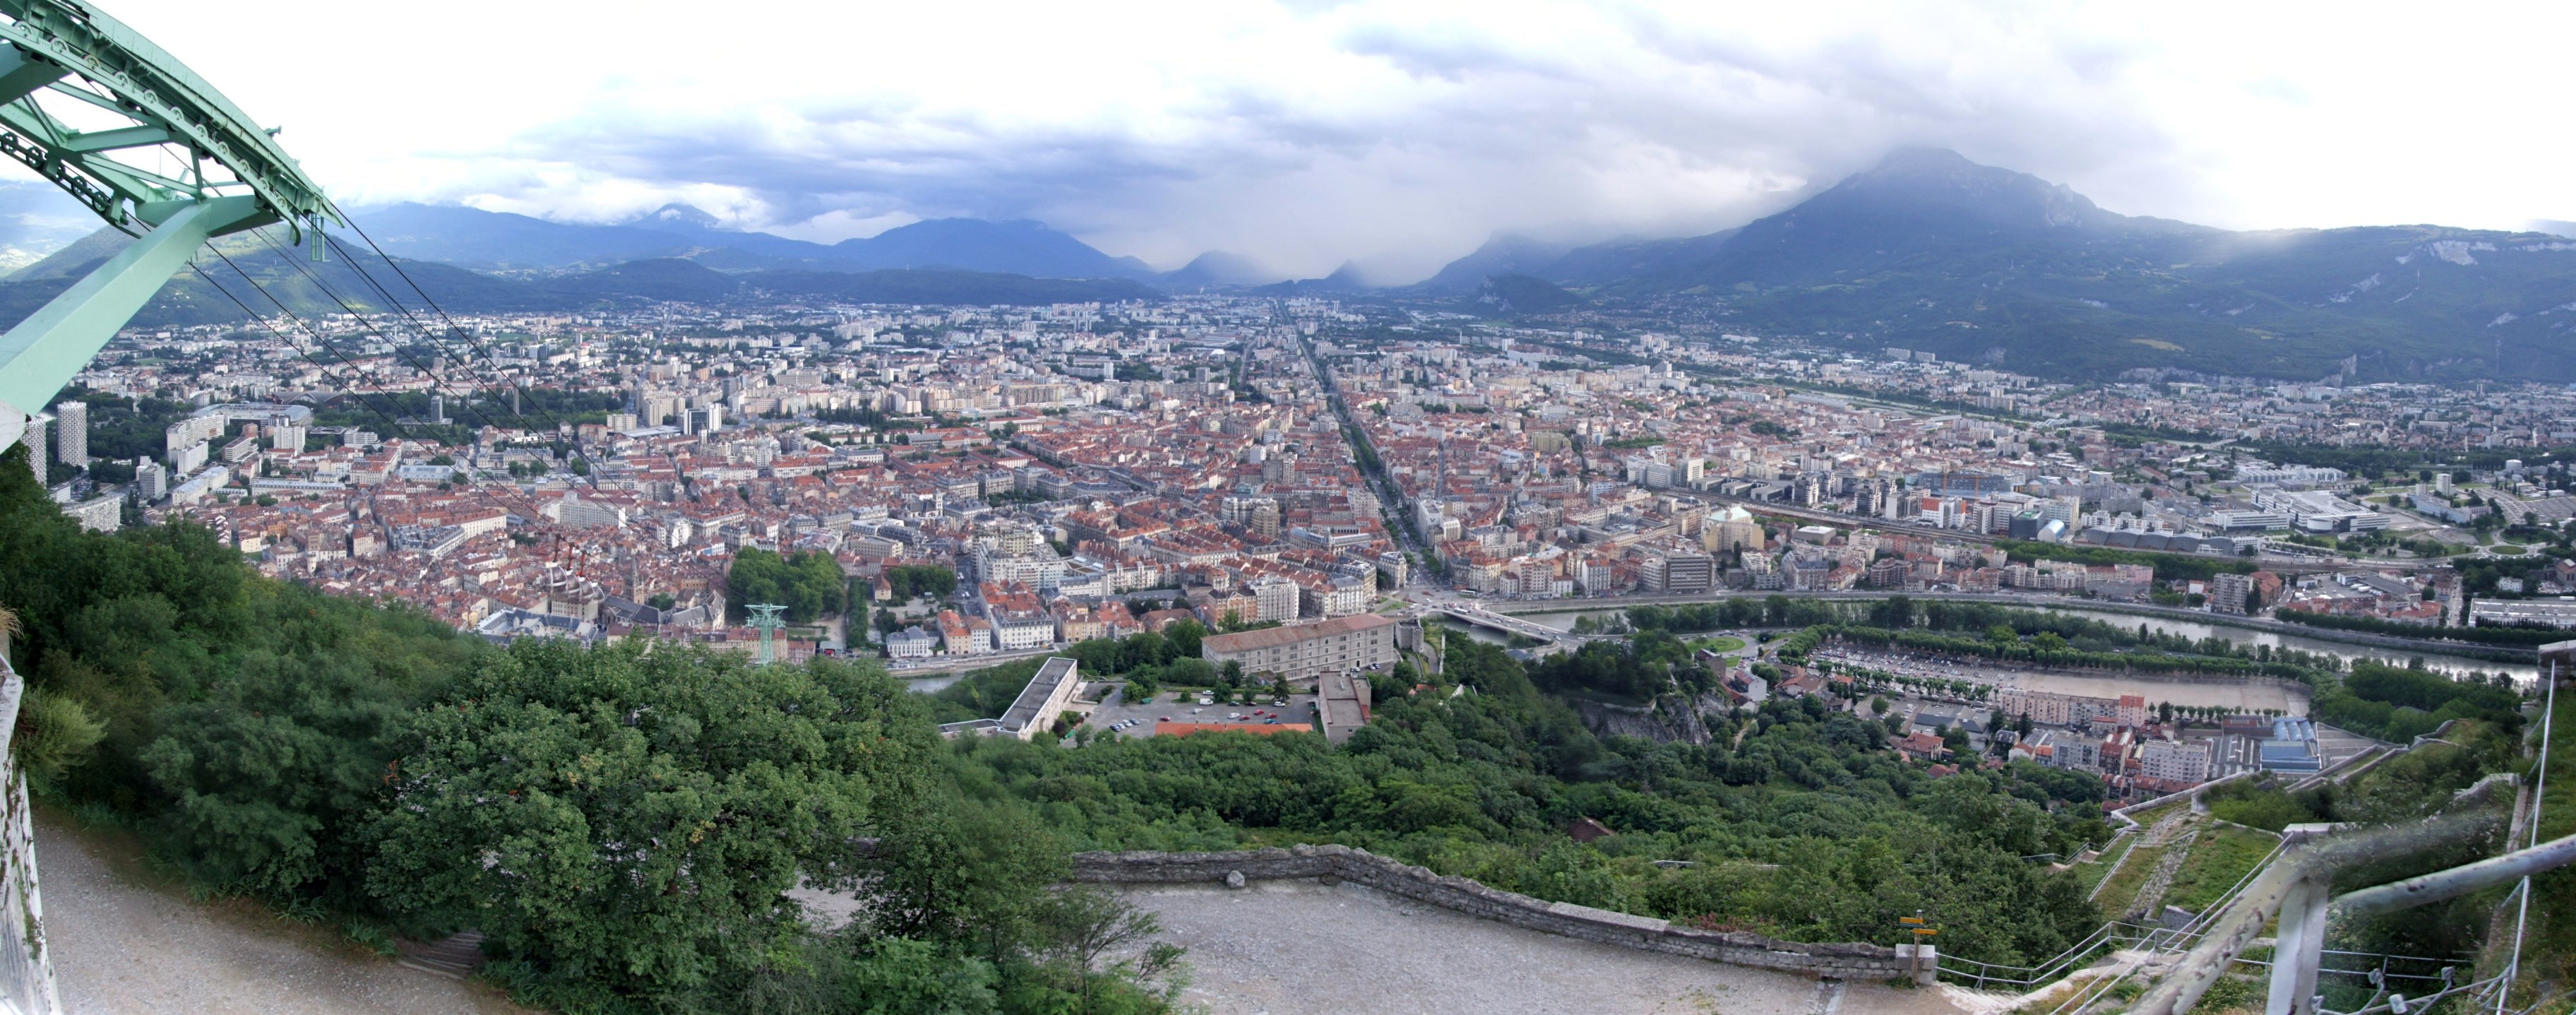 Panorama de Grenoble